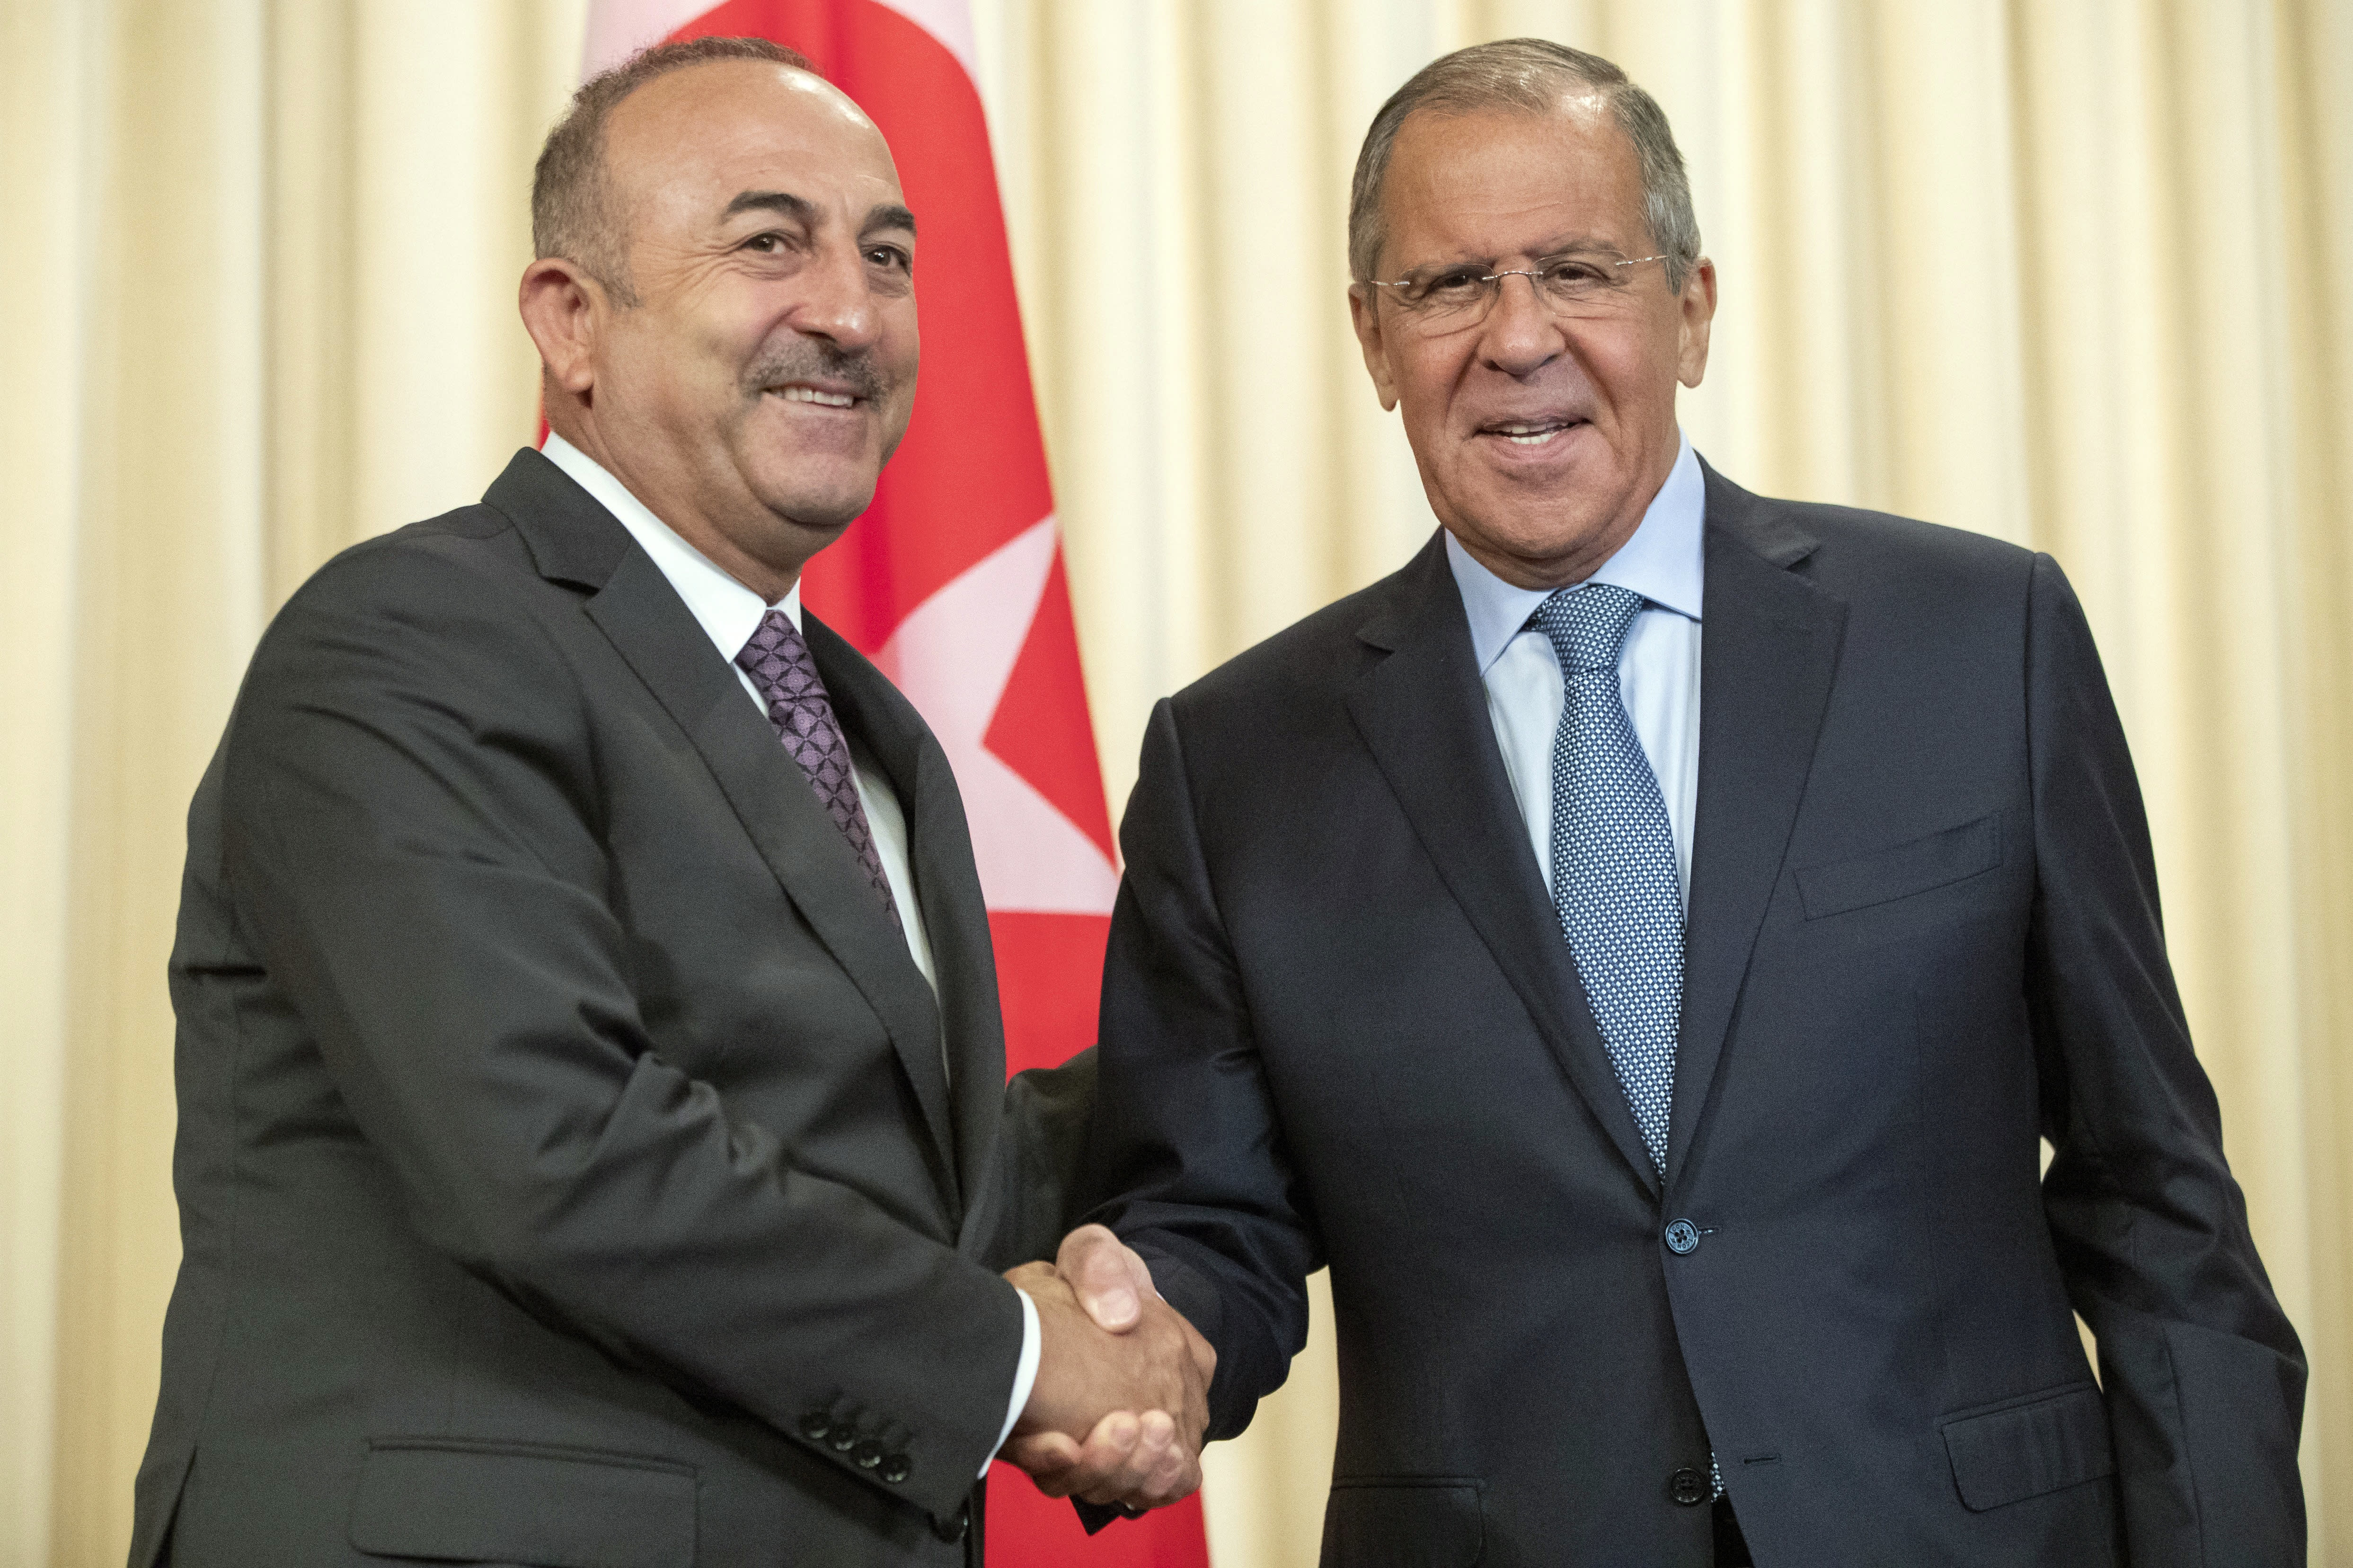 Russian Foreign Minister Sergey Lavrov, right, and his Turkish counterpart Mevlut Cavusoglu shake hands during their meeting in Moscow, Russia, Friday, Aug. 24, 2018. Turkey's Foreign Minister on Friday warned against a possible Syrian government offensive on the last remaining opposition stronghold while Russia indicated that it's losing its patience with the rebels. (AP Photo/Pavel Golovkin)